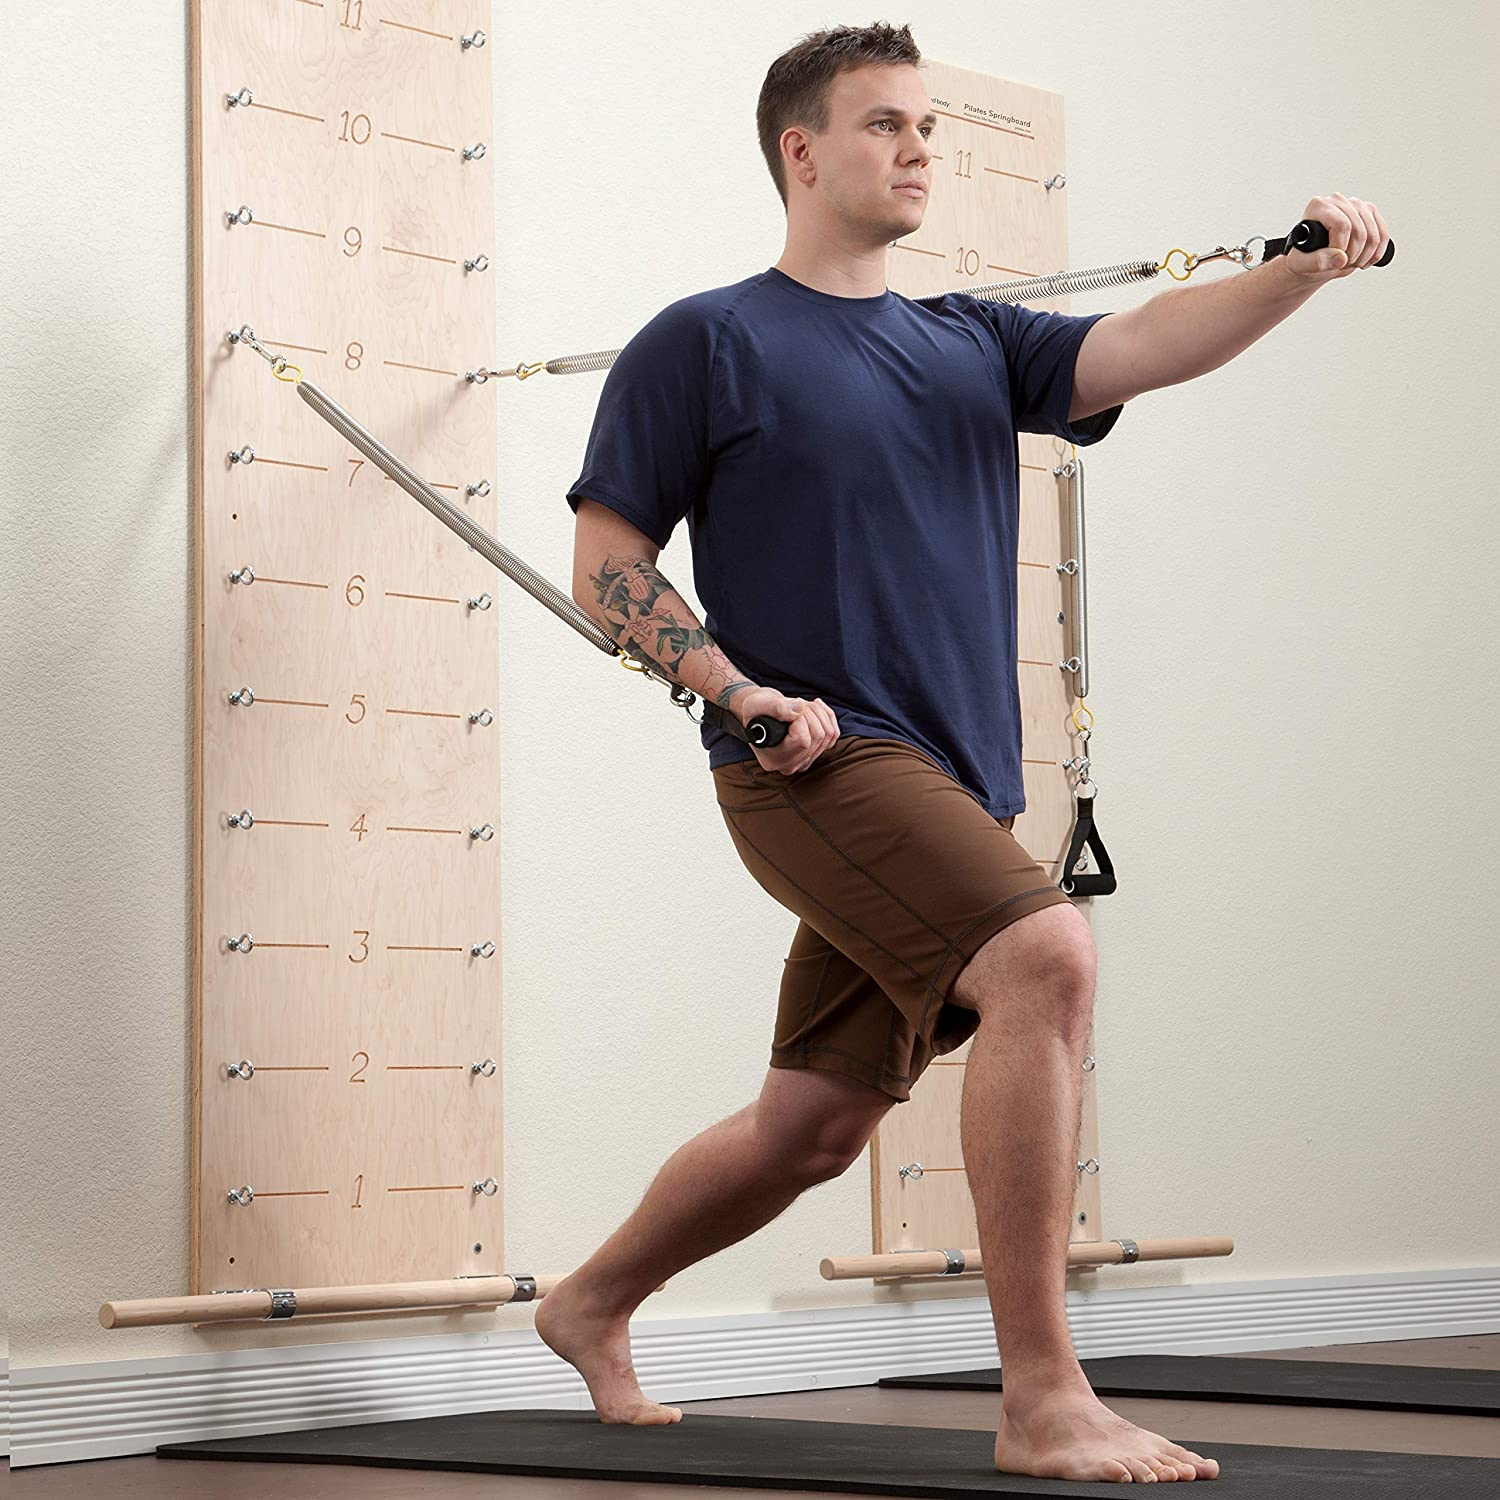 balanced body Pilates Springboard Exercise Equipment for The Home Studio and More